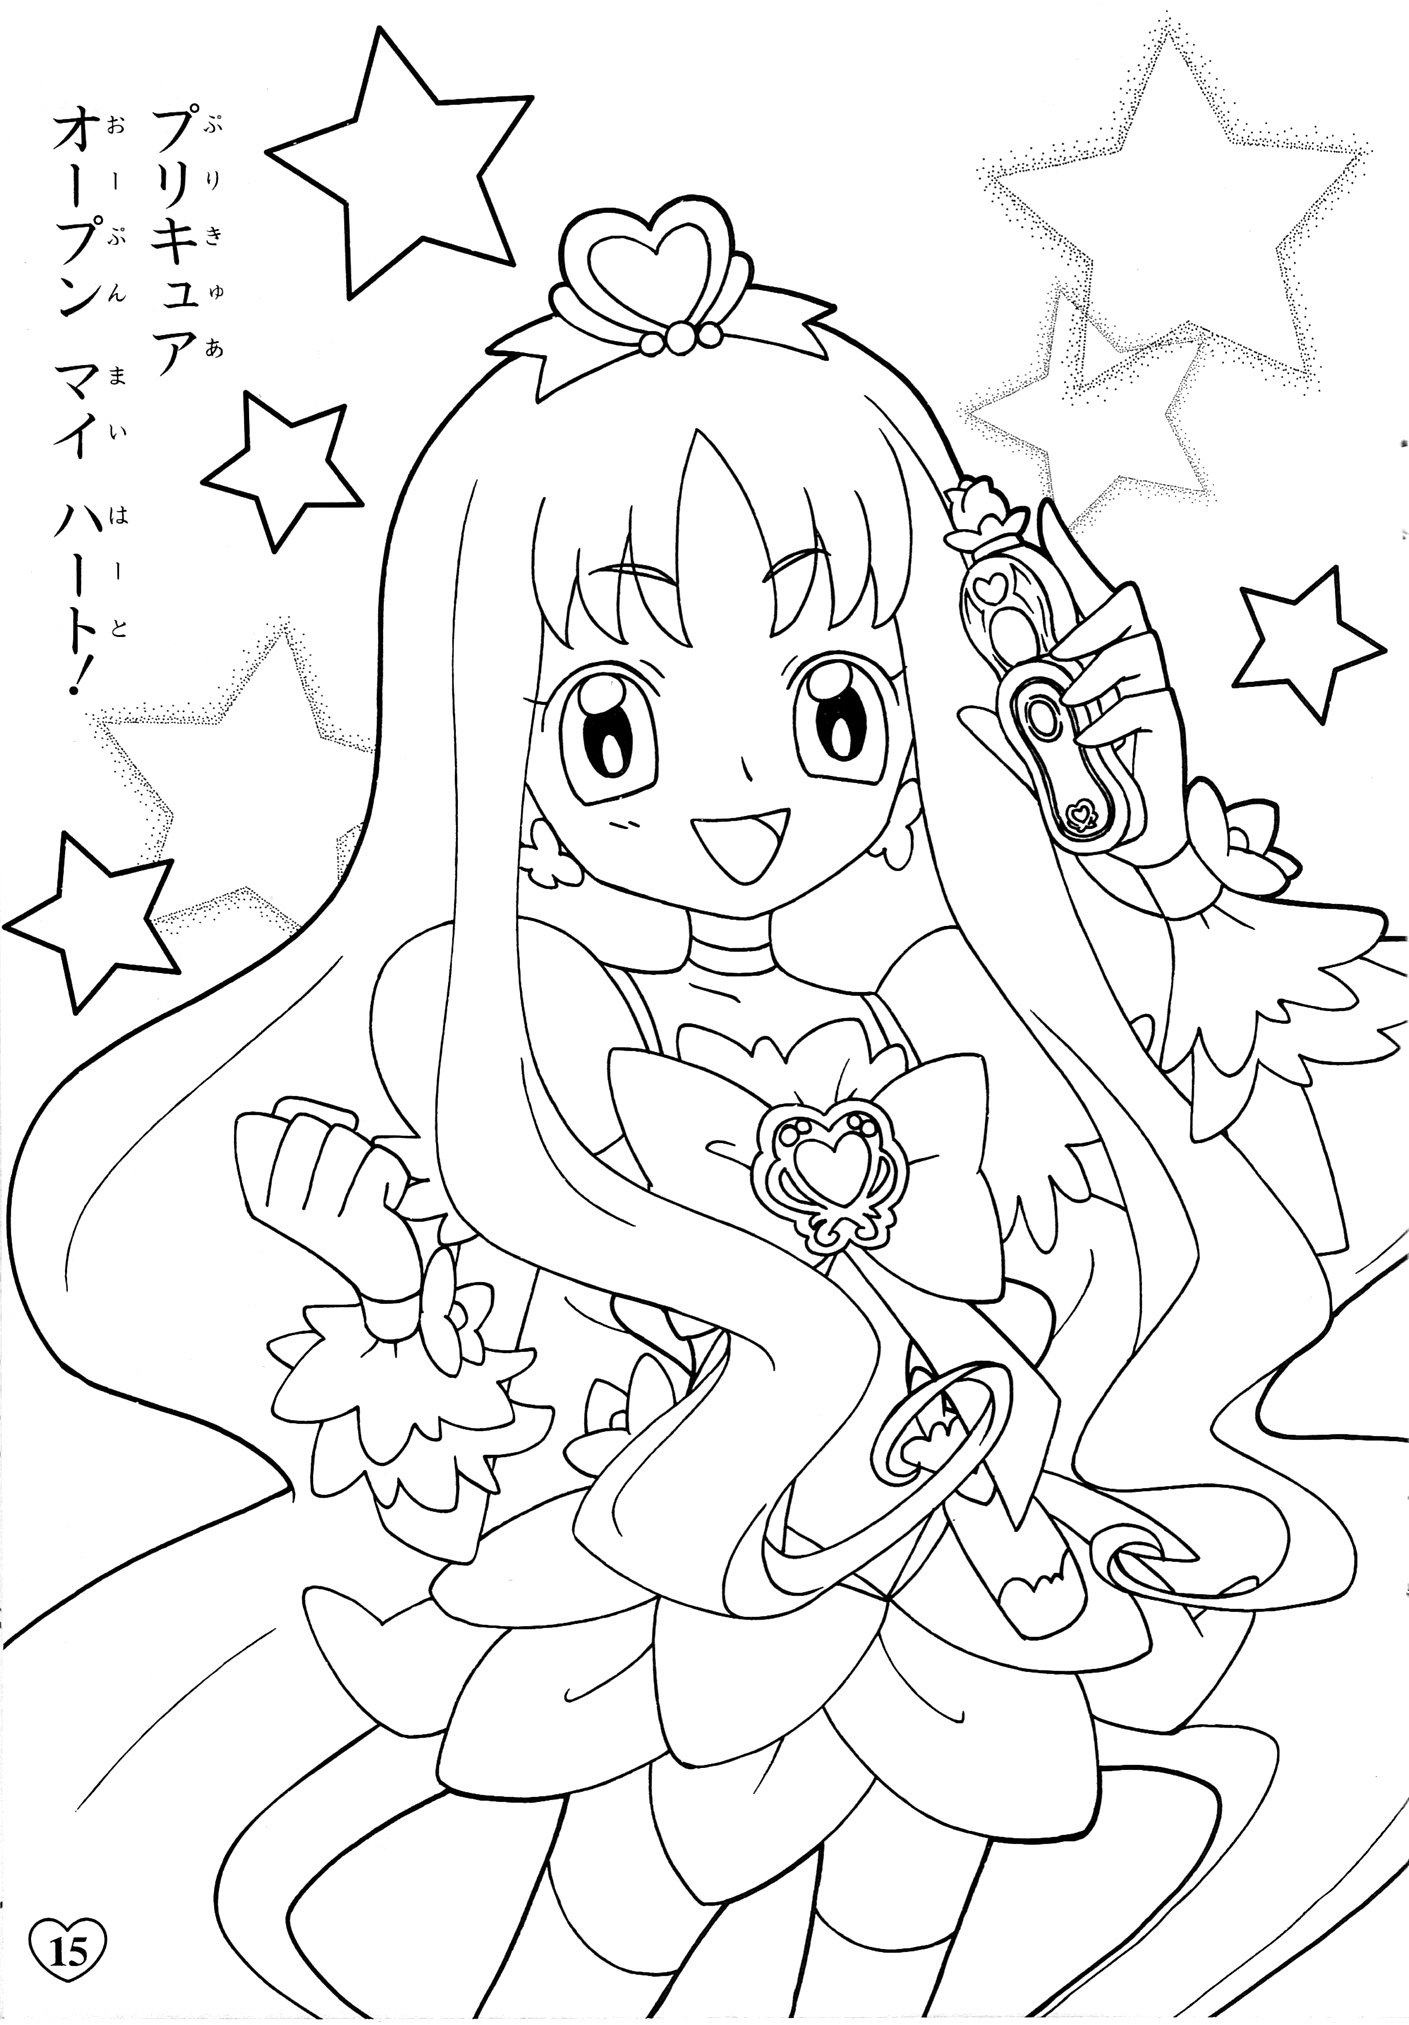 oasidelleanime precure coloring pages - photo #6